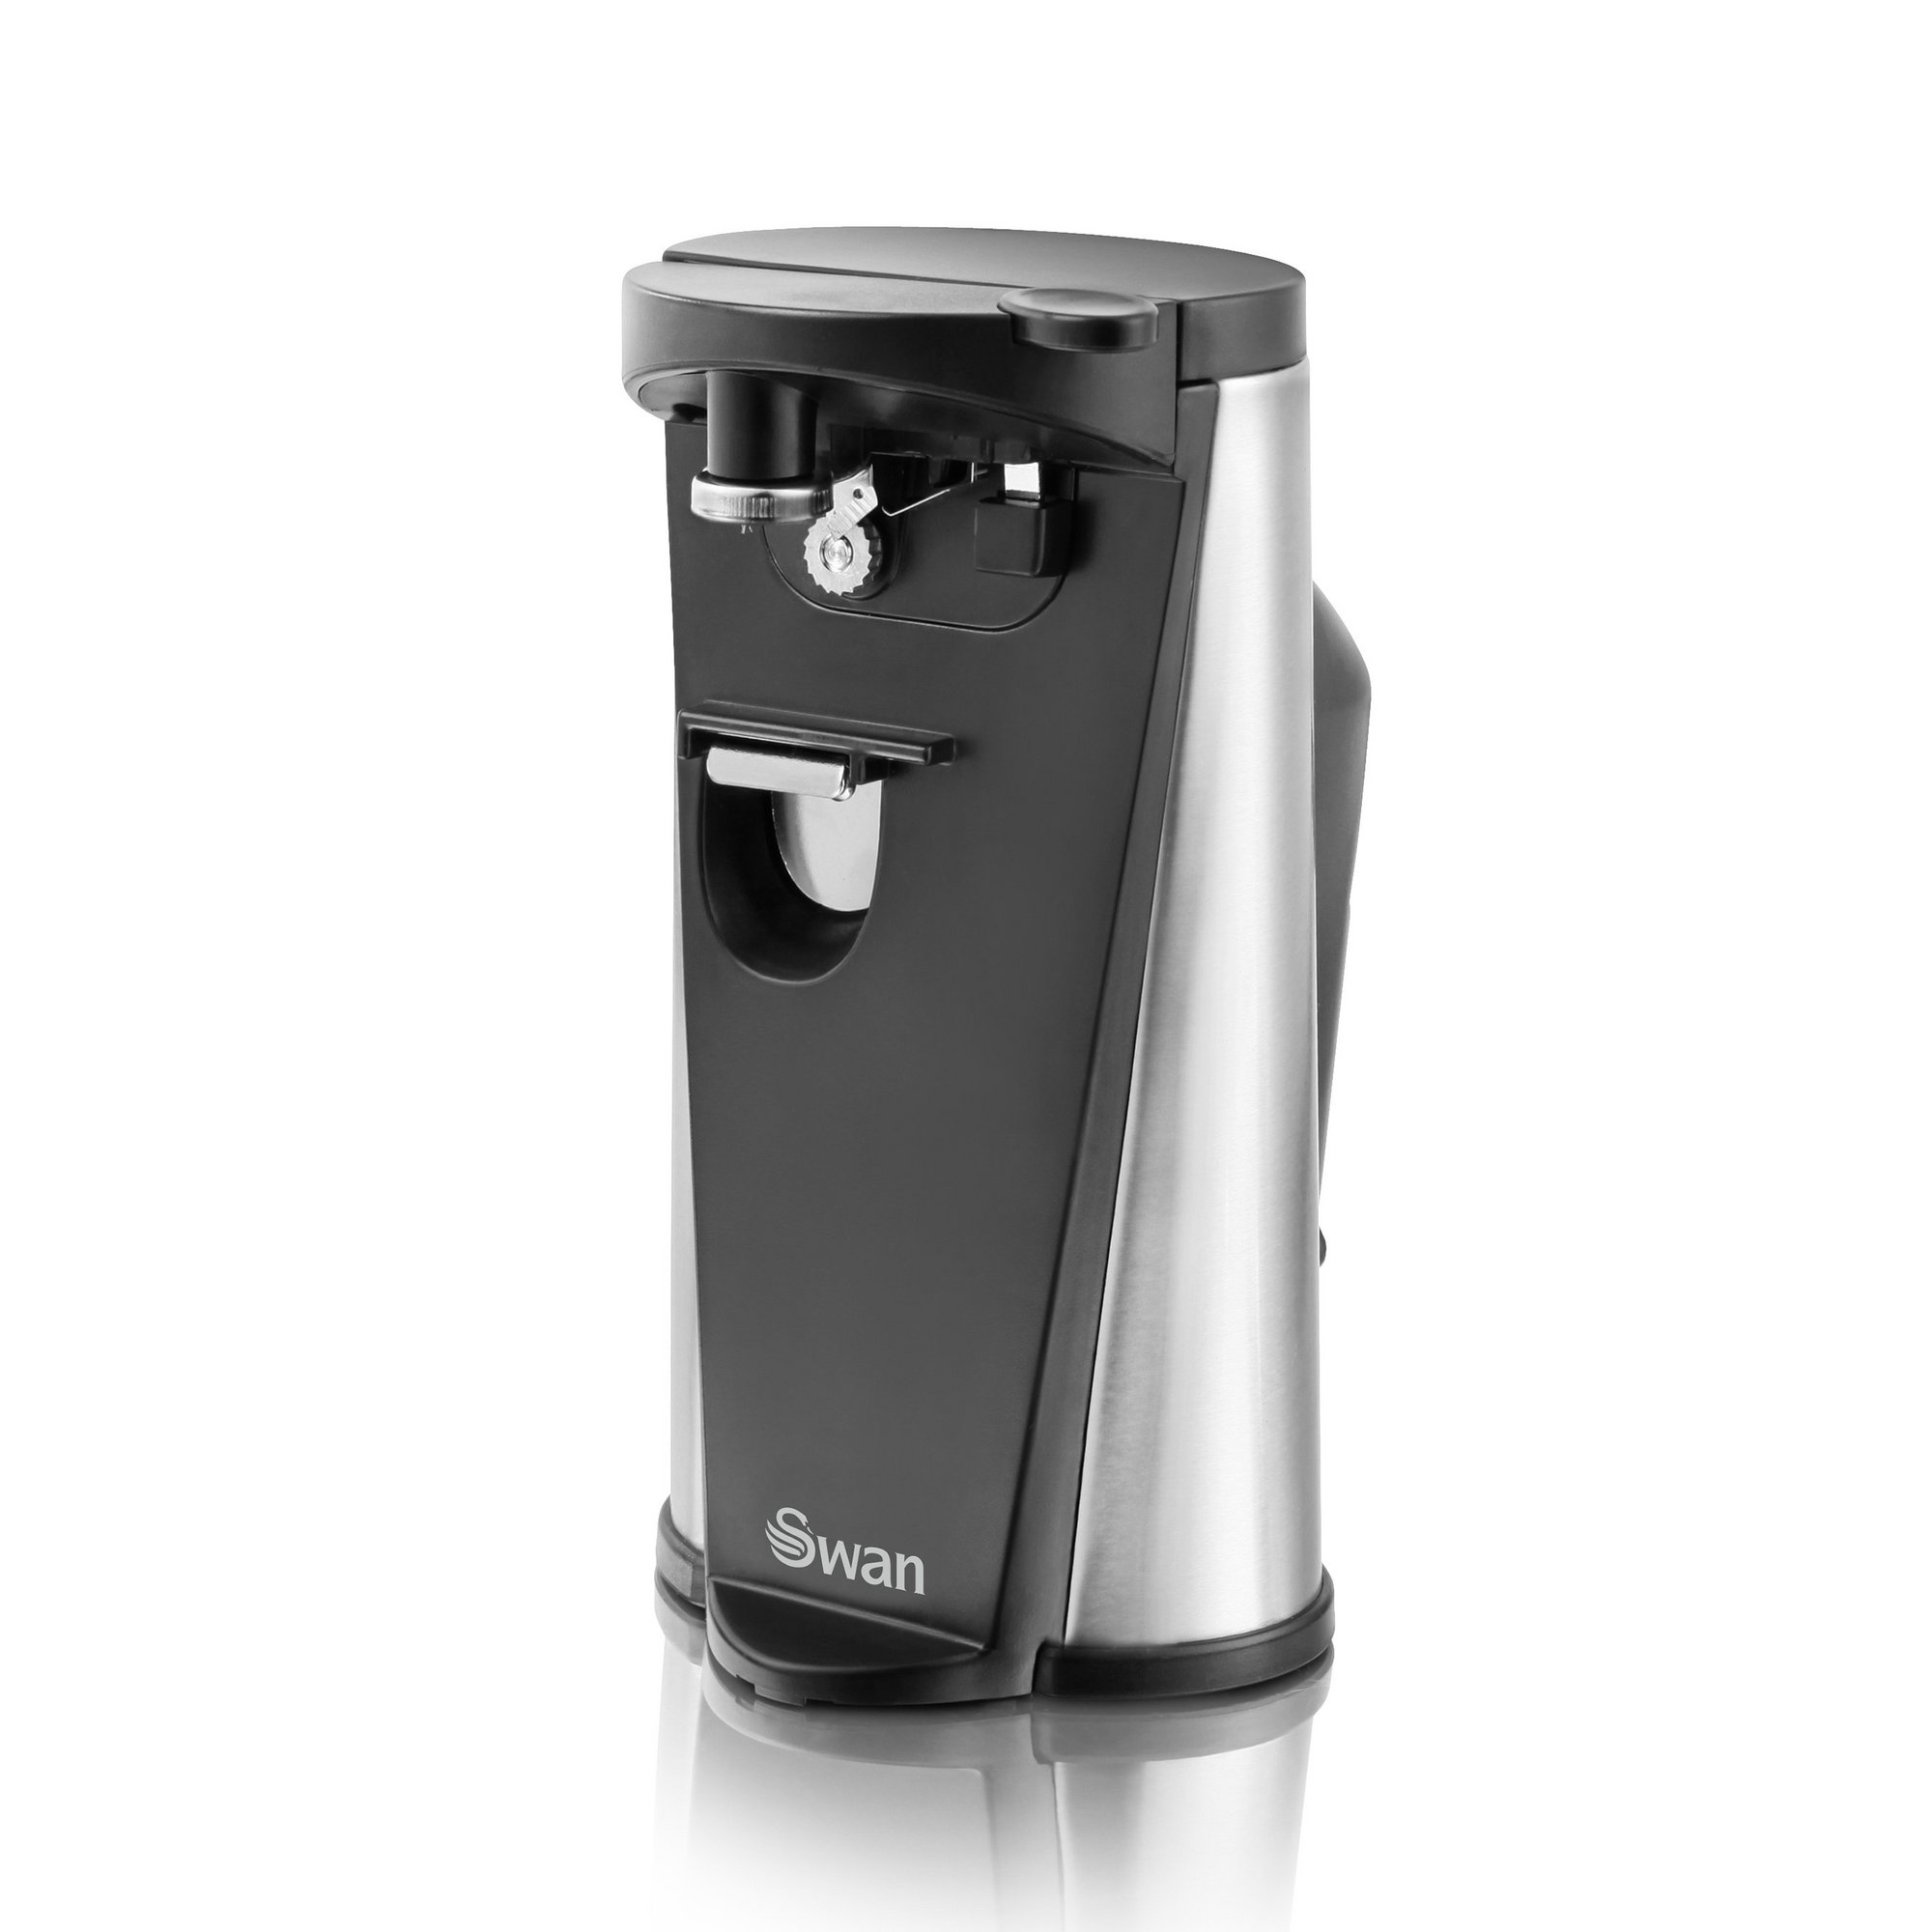 Image of Swan Electric Can Opener